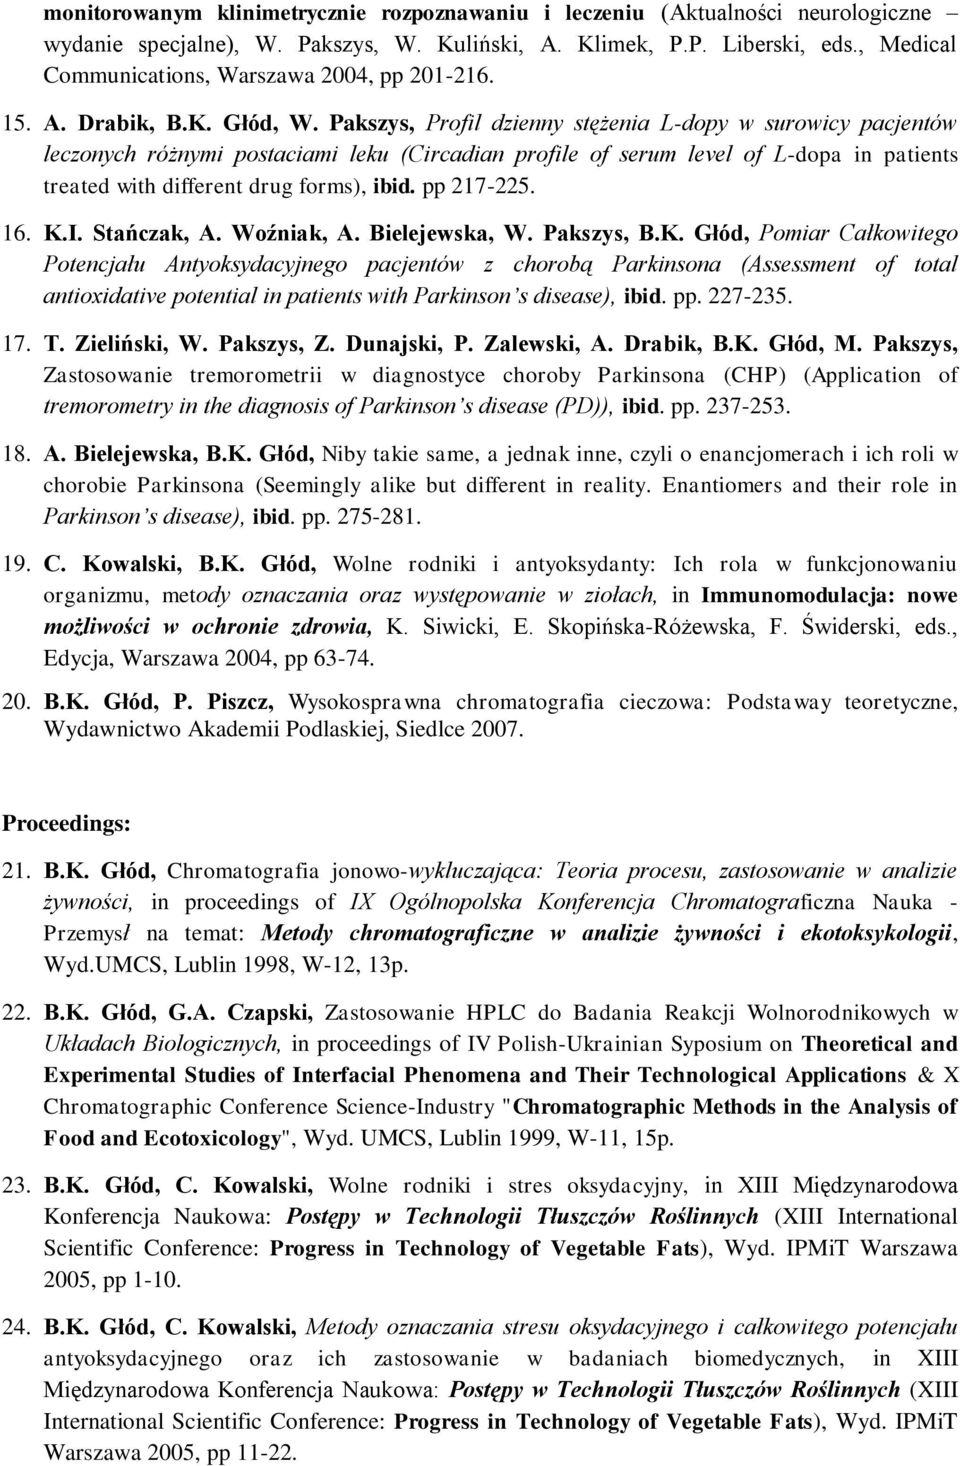 Pakszys, Profil dzienny stężenia L-dopy w surowicy pacjentów leczonych różnymi postaciami leku (Circadian profile of serum level of L-dopa in patients treated with different drug forms), ibid.